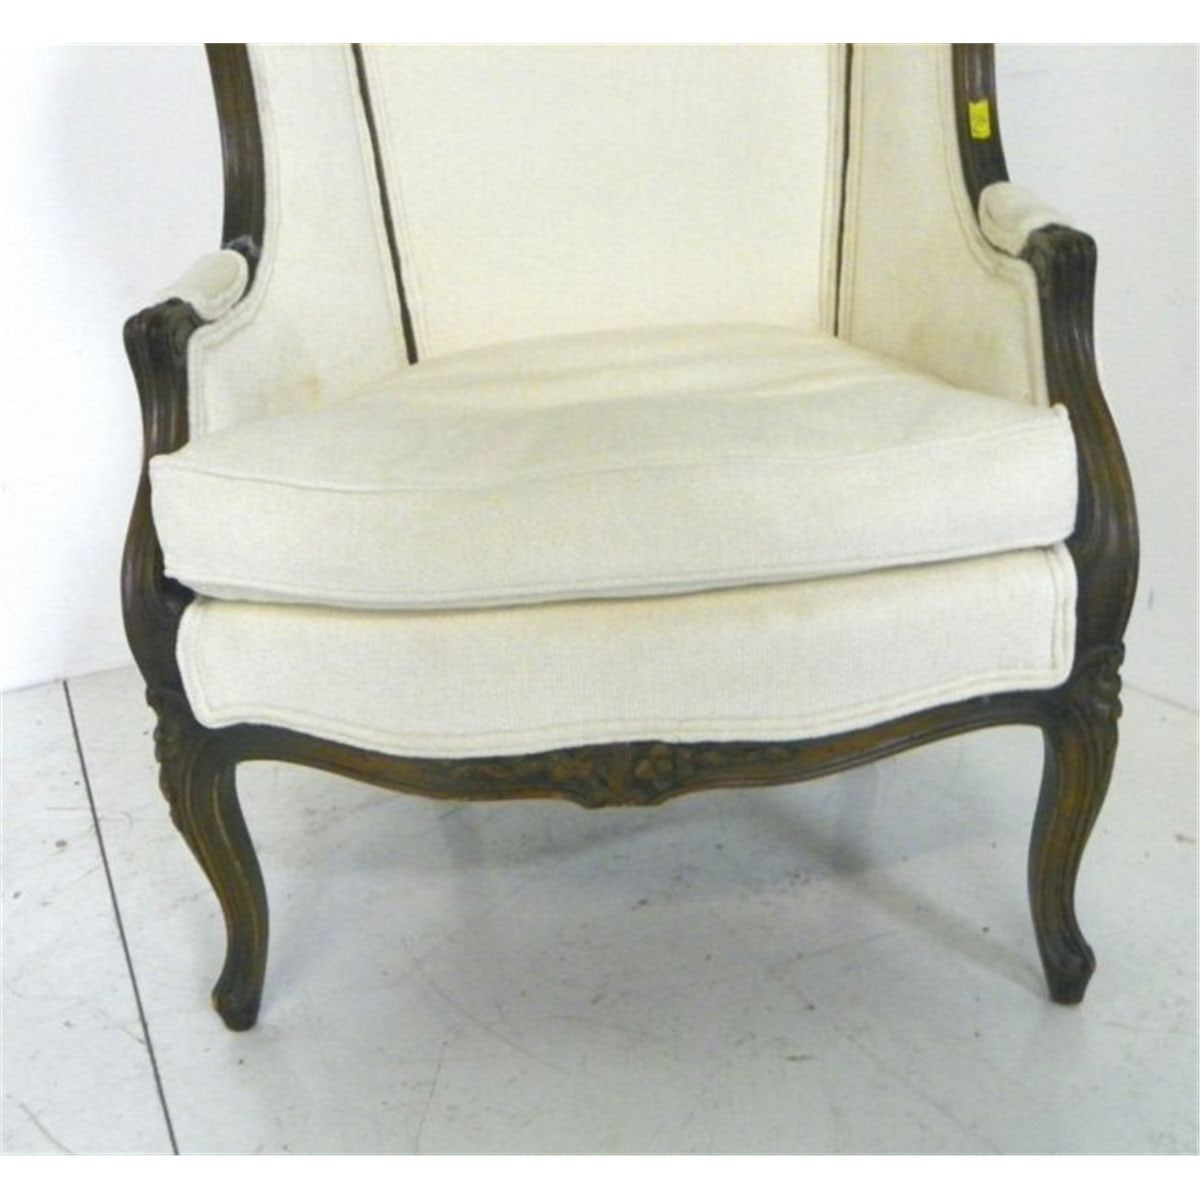 20th c. French style hooded porter's chair